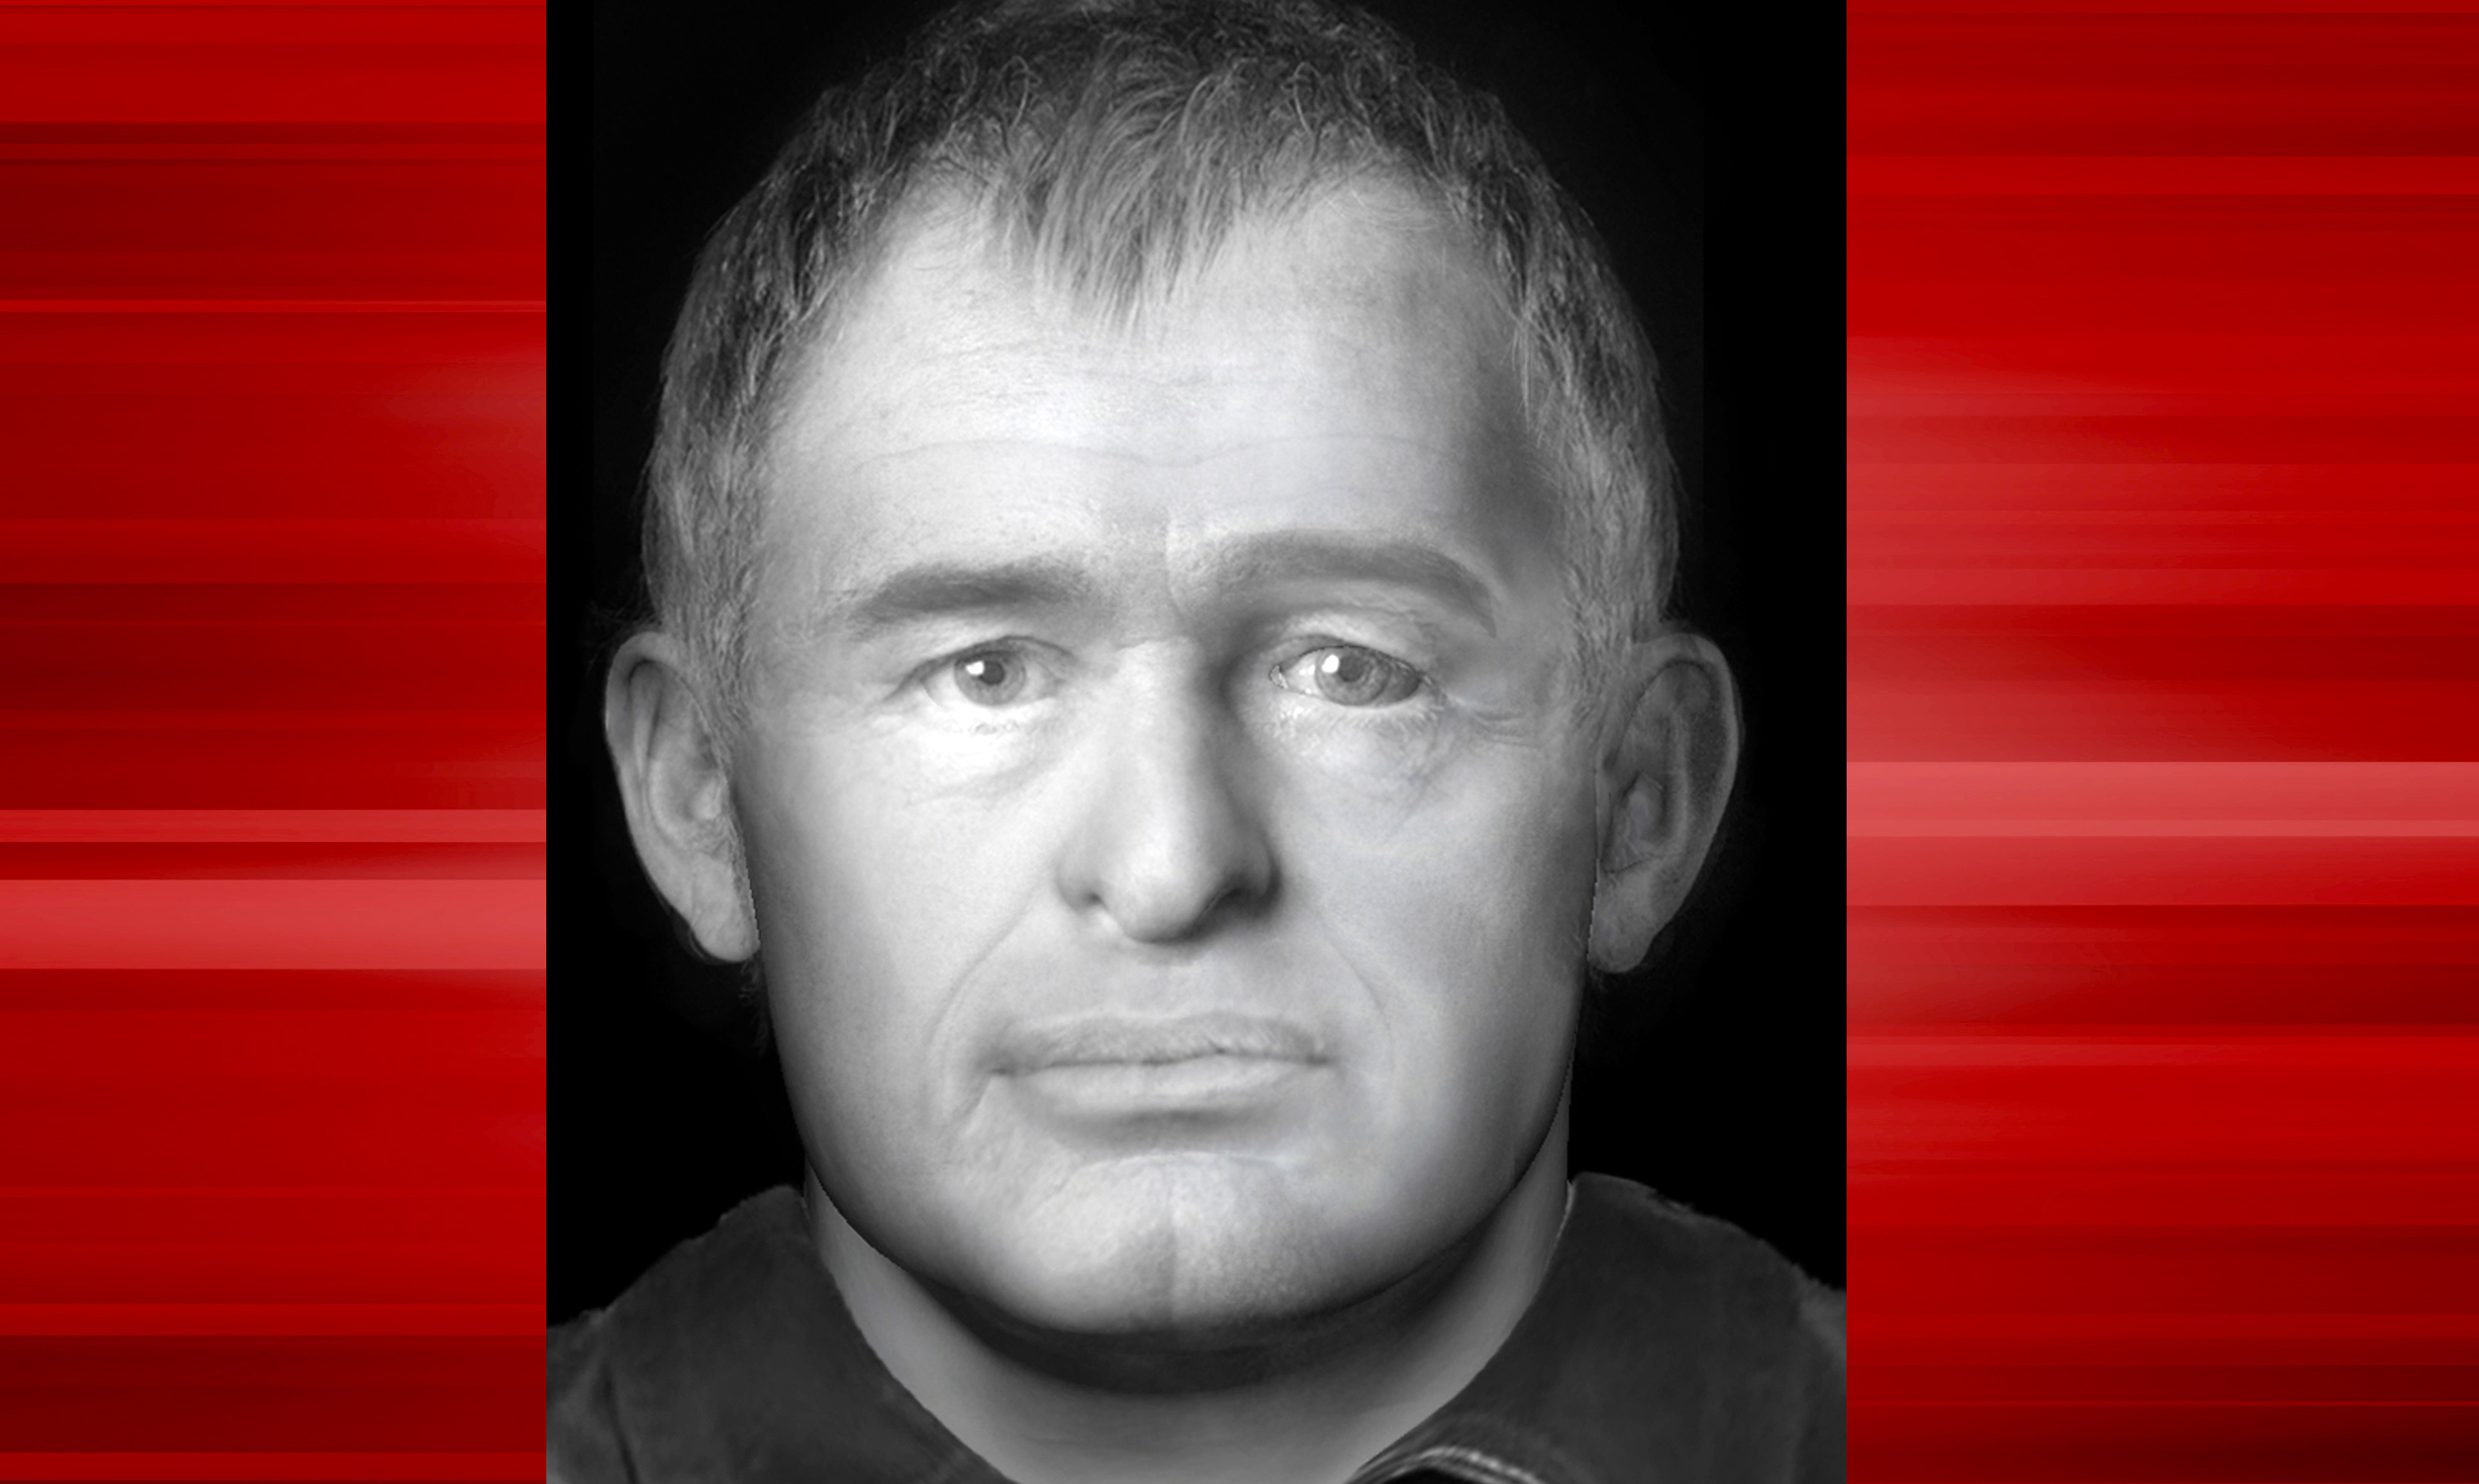 A facial reconstruction carried out by Dundee University created in the hope of identifying a man found dead in woods in the west of Ireland last year.